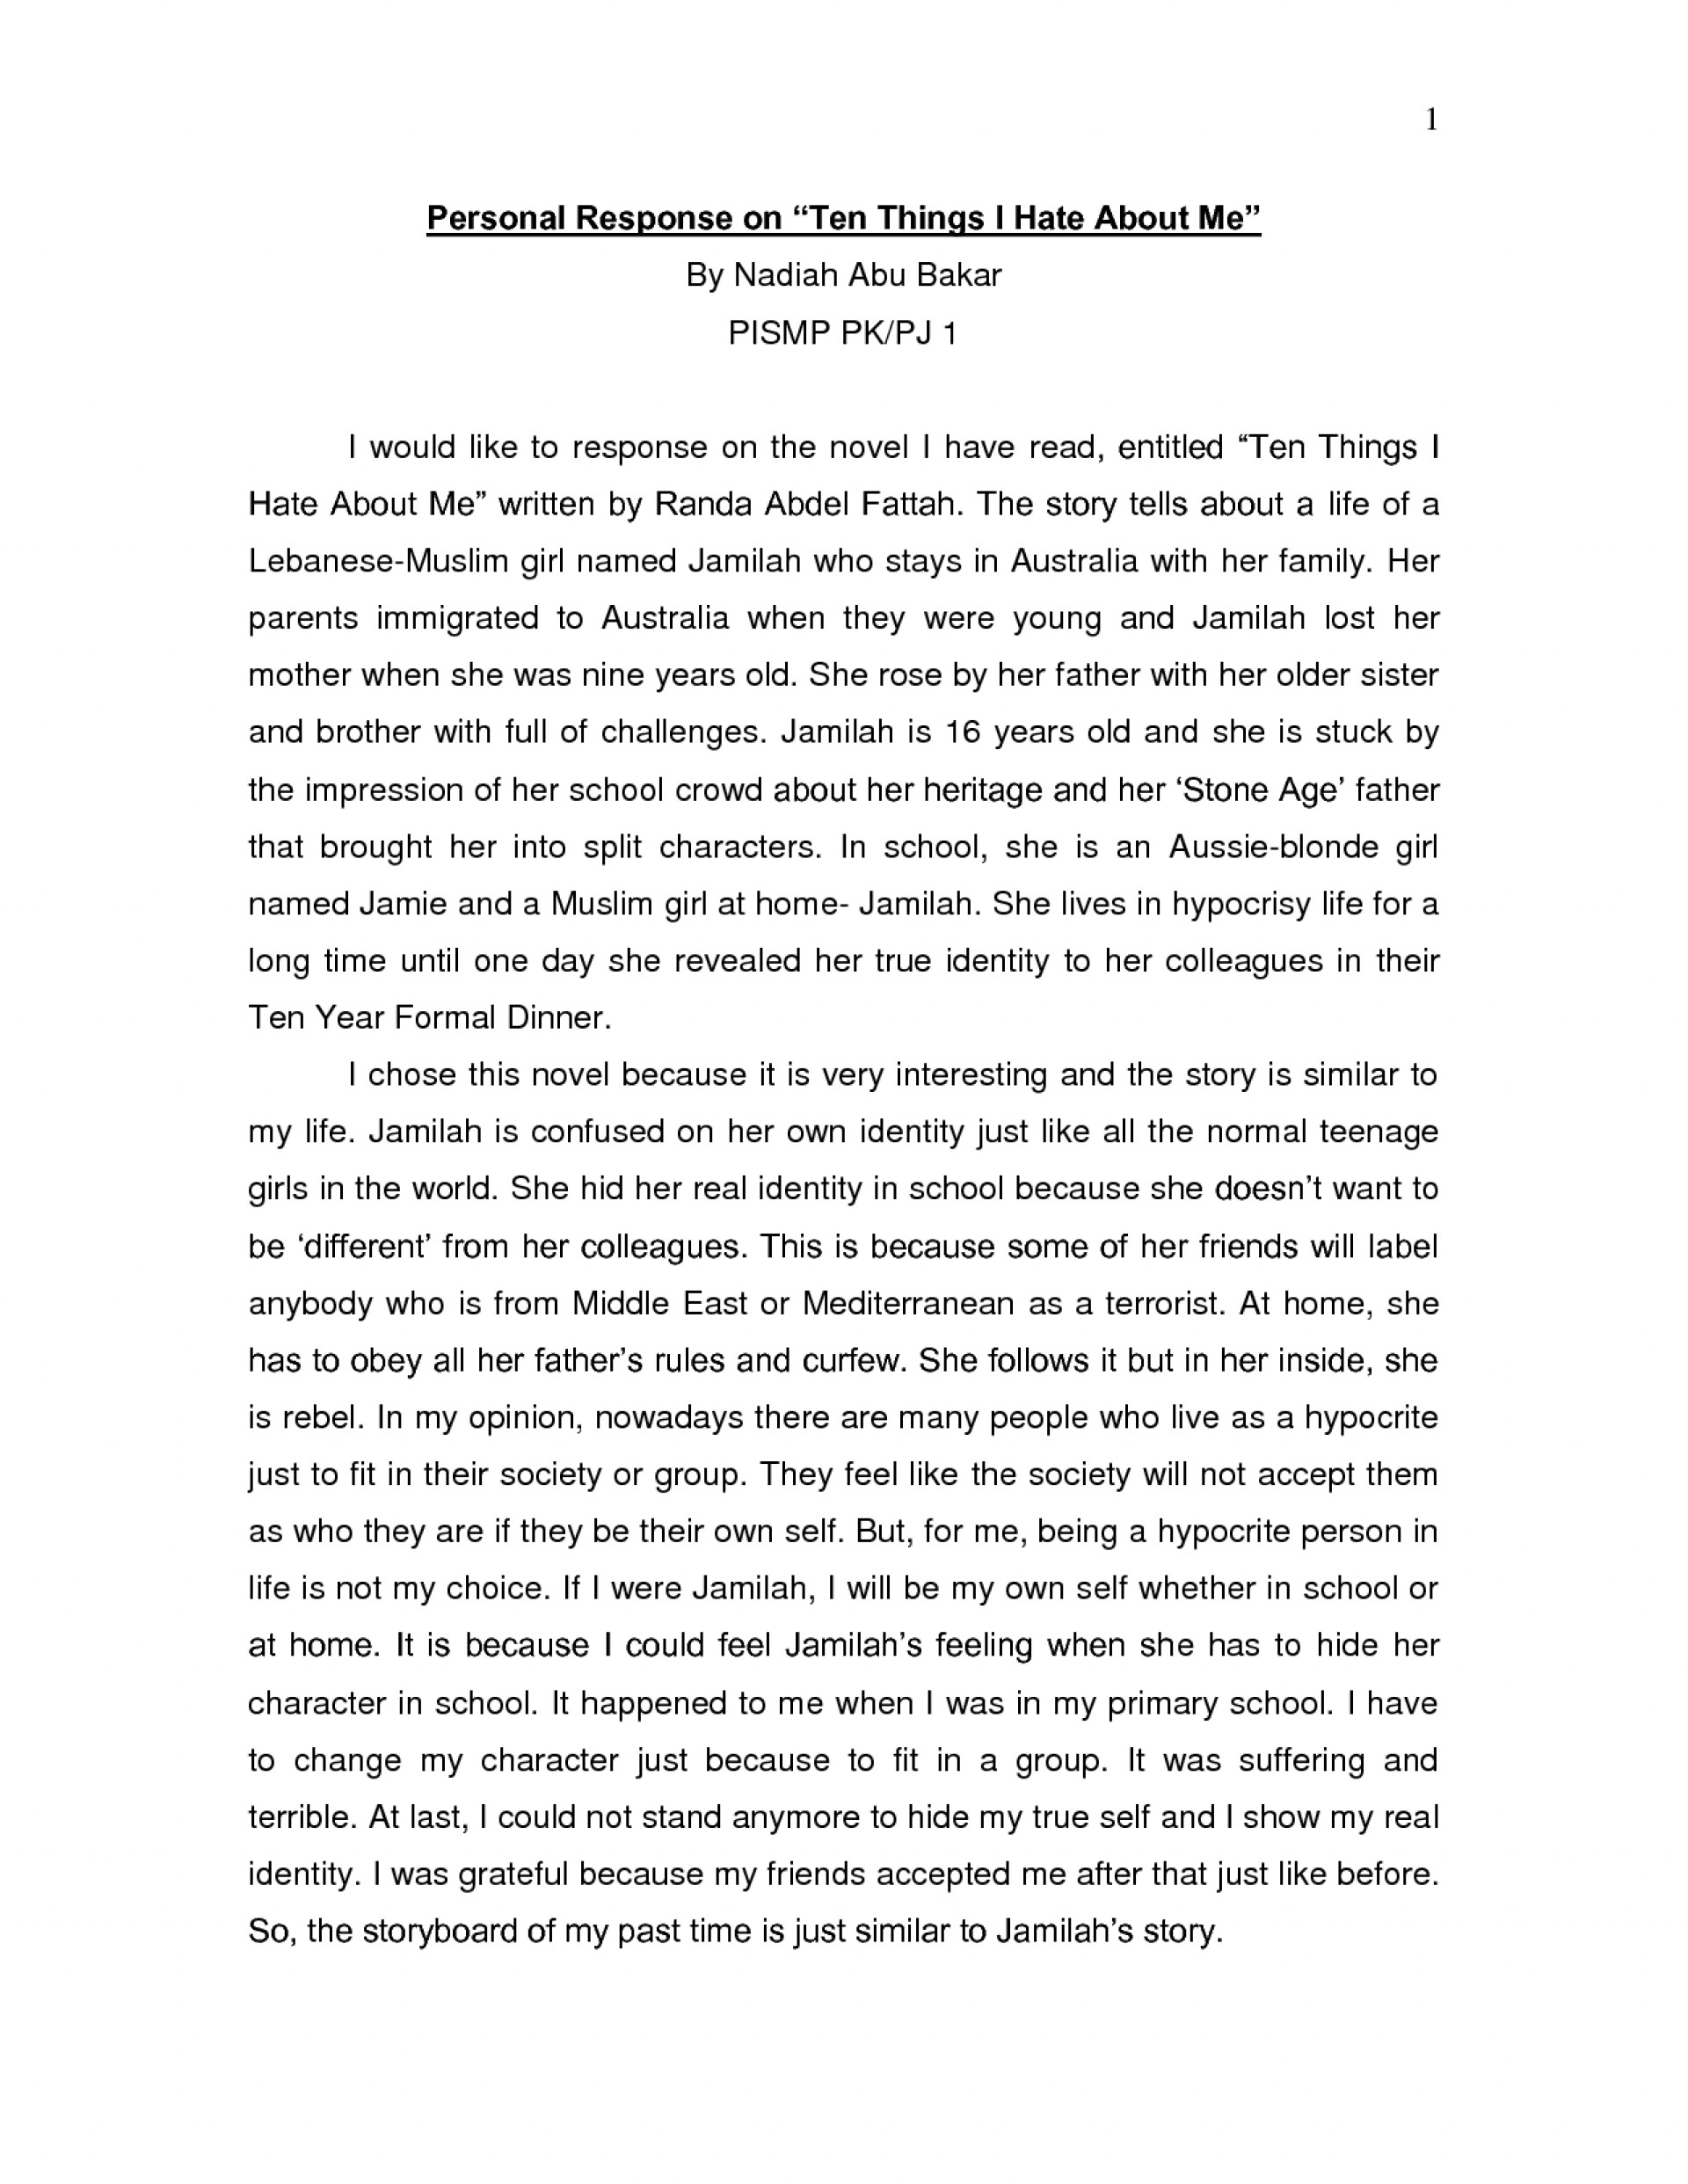 002 Reflective Essays Essay Example Writing Write Best Guide Mp9fs In The First Person About My Course Reflection Class Skills Tips Your Magnificent By Manzoor Mirza Pdf Analysis Definition Style 1920